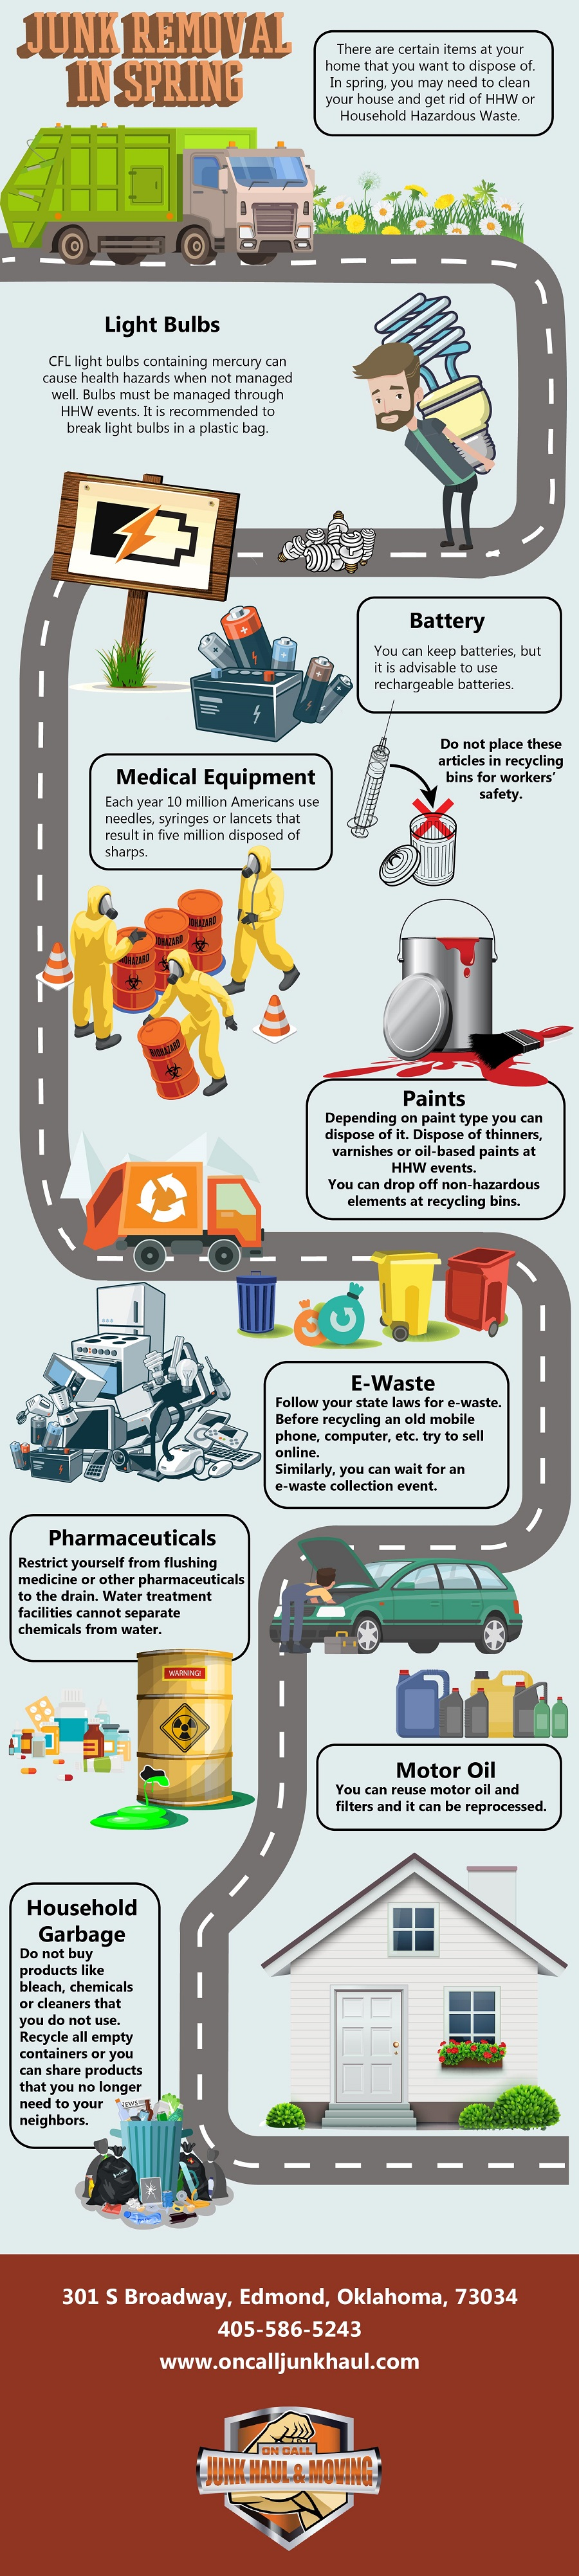 Junk Removal in Spring Infographic